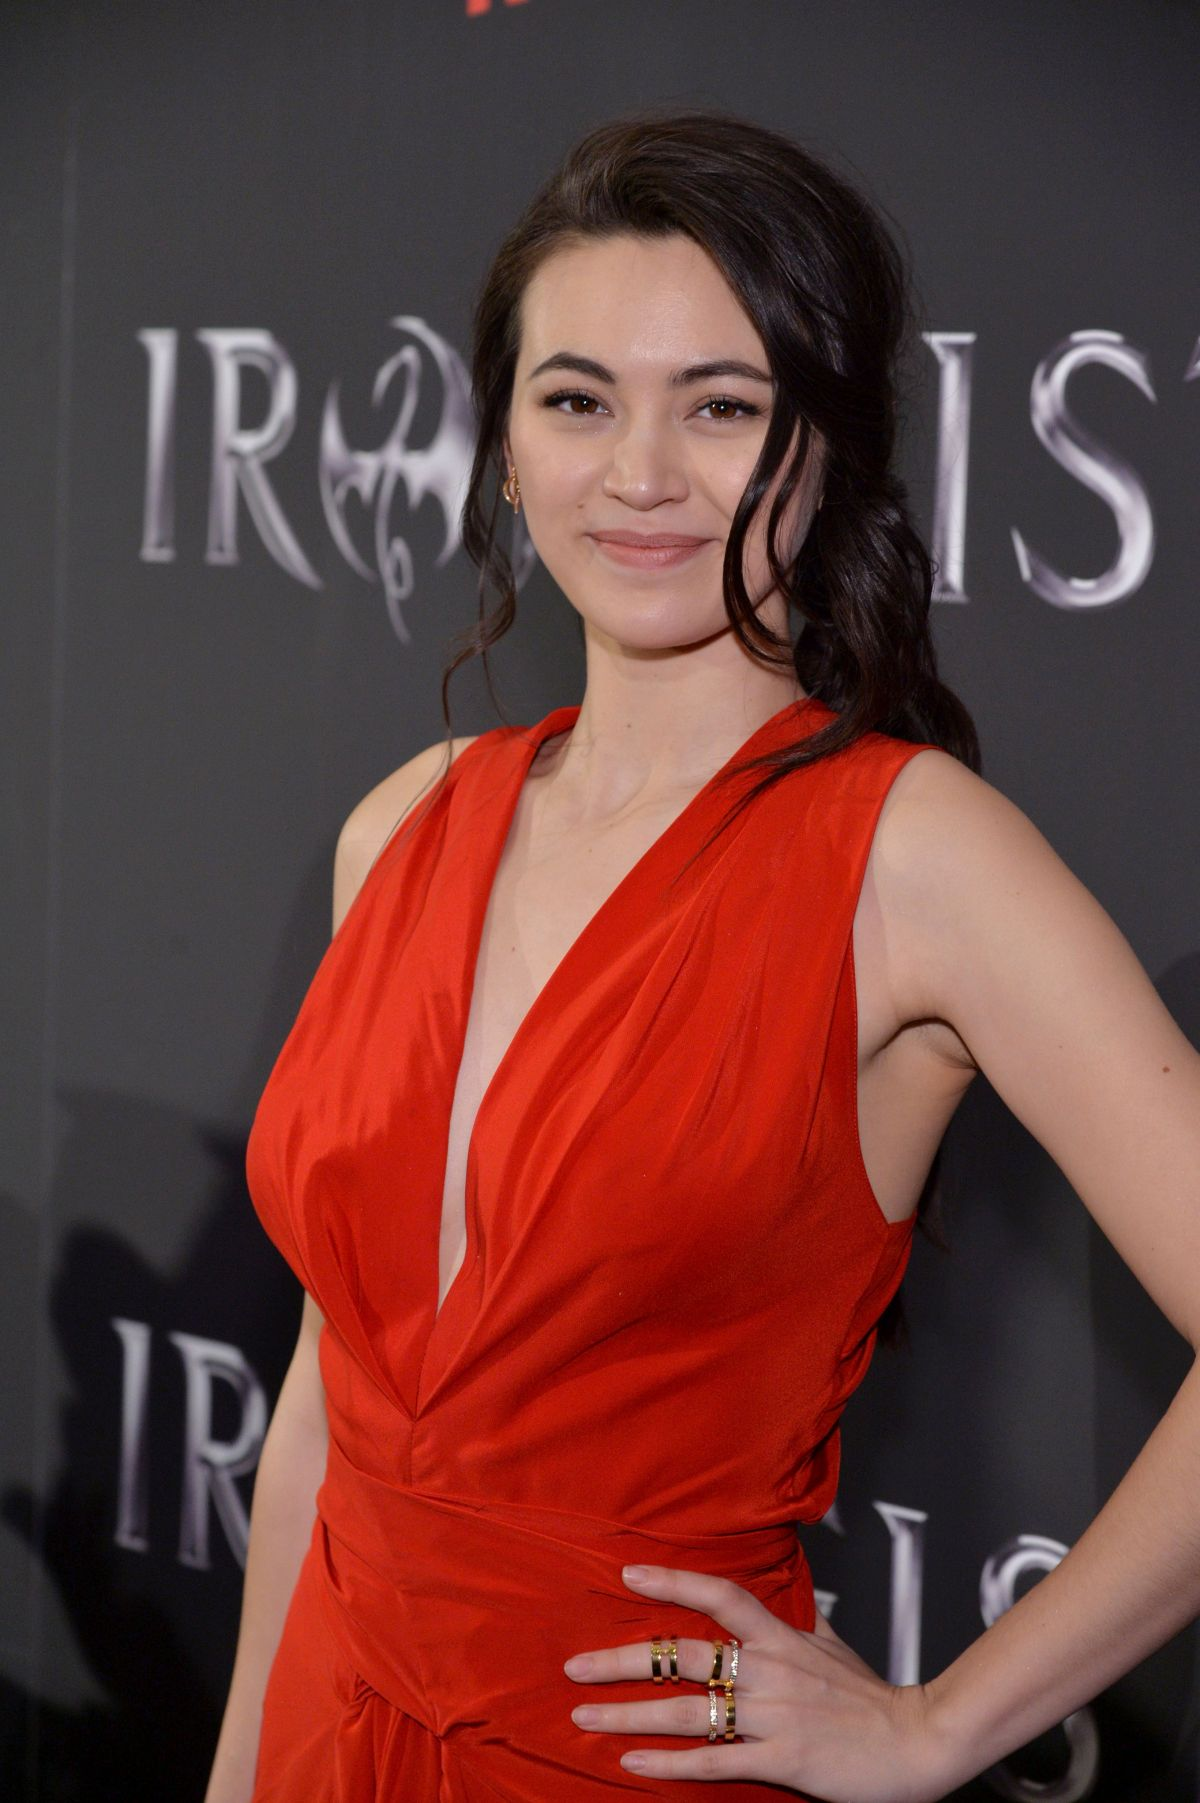 JESSICA HENWICK at Iron Fist Premiere in New York 03/15/2017